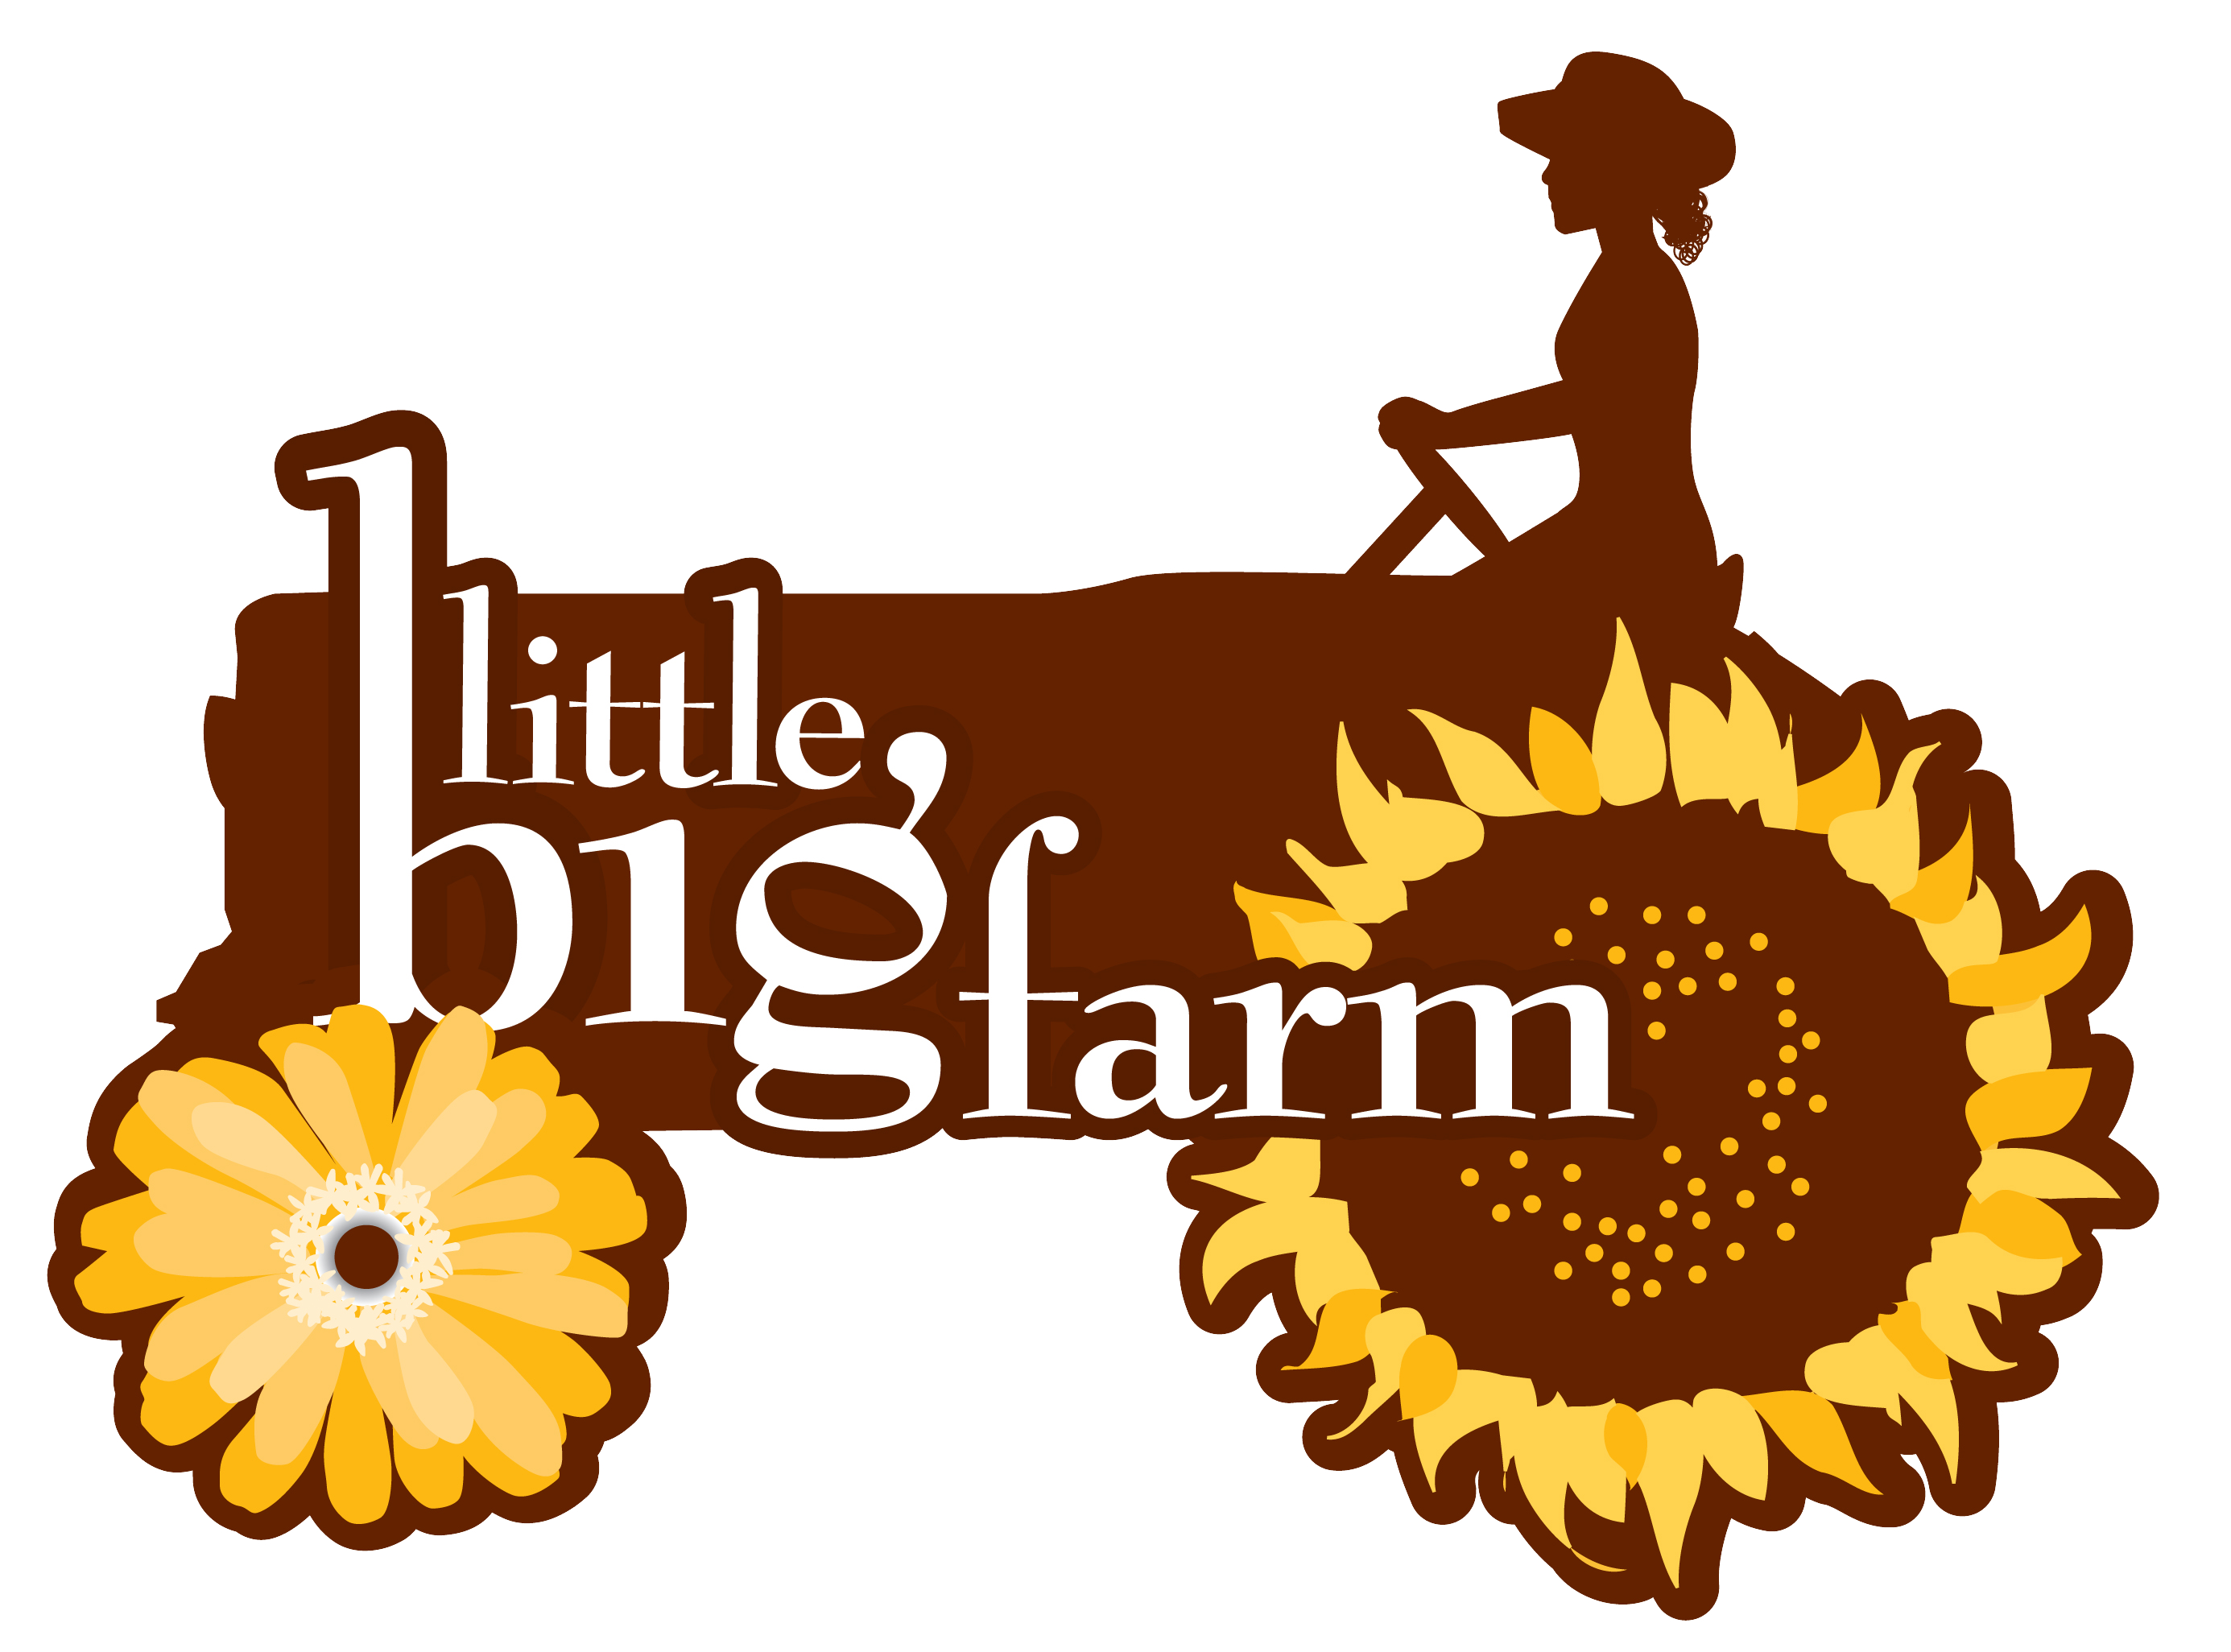 Little Big Farm, Blairstown, New Jersey